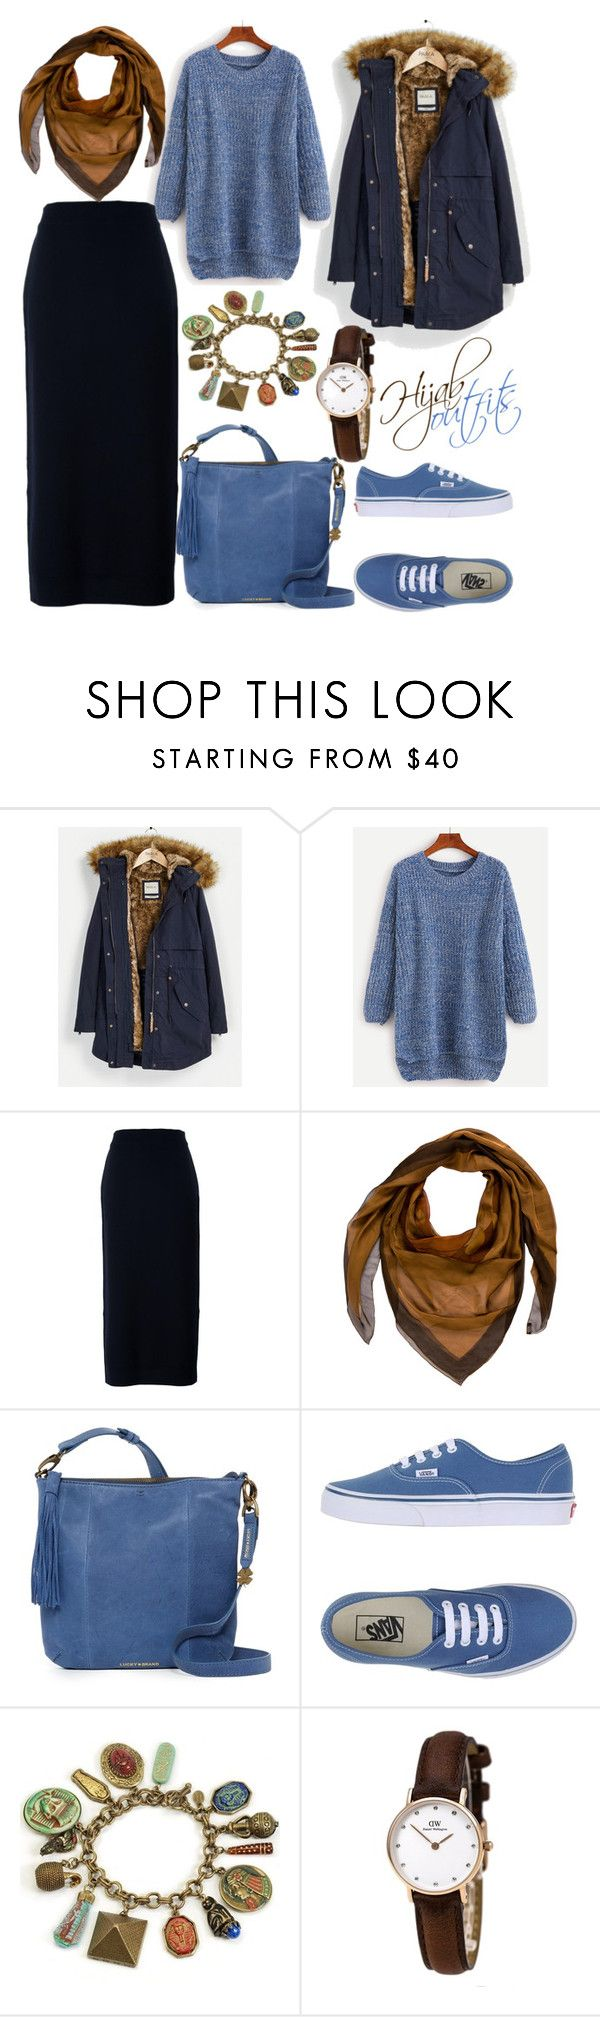 """#Hijab_outfits #Casual"" by mennah-ibrahim ❤ liked on Polyvore featuring Parka London, Enföld, Hermès, Lucky Brand, Vans and Sweet Romance"